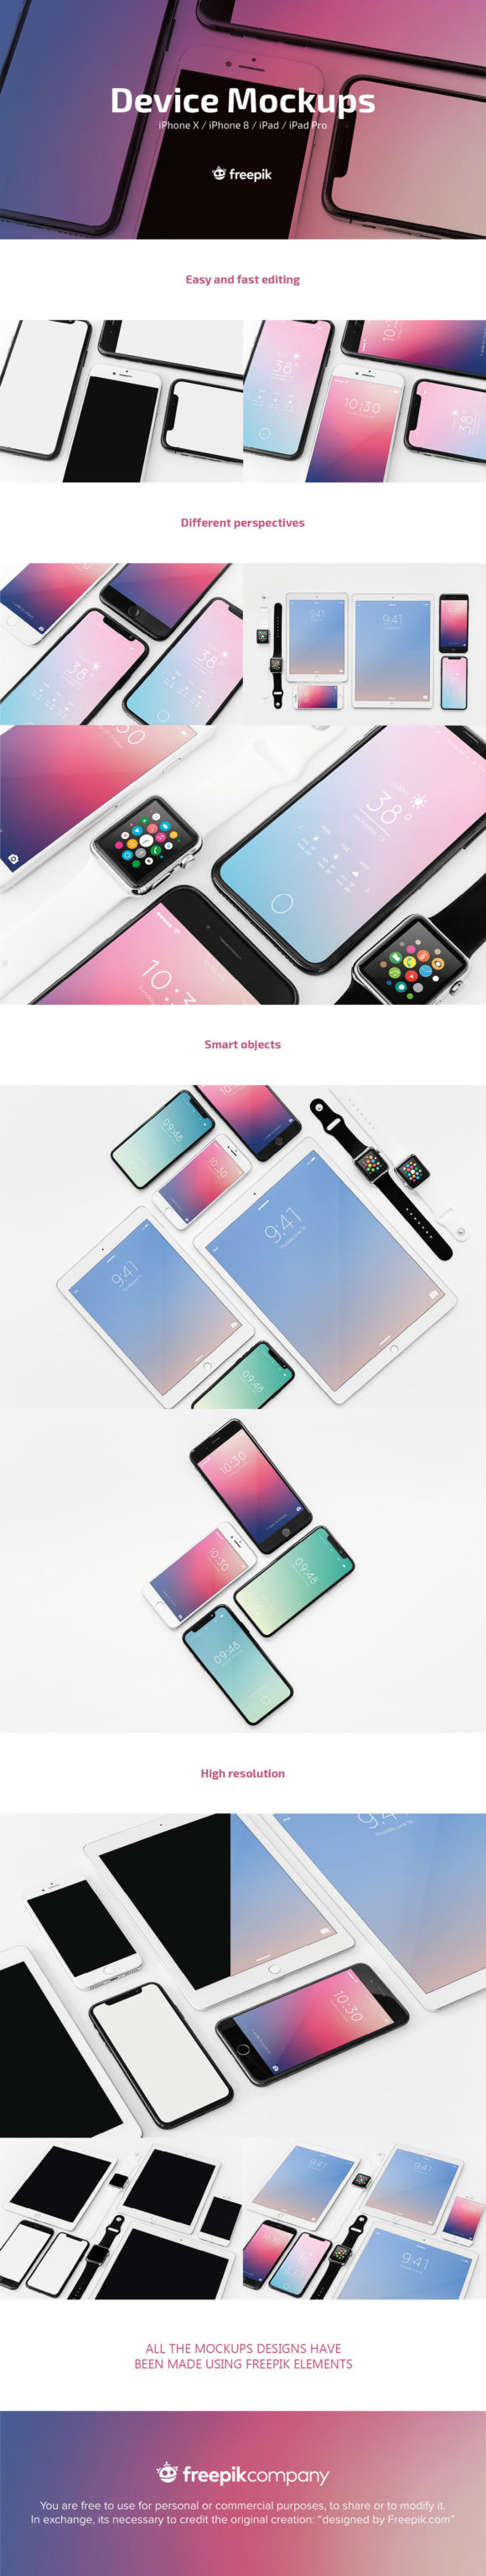 Apple device mockups pack preview